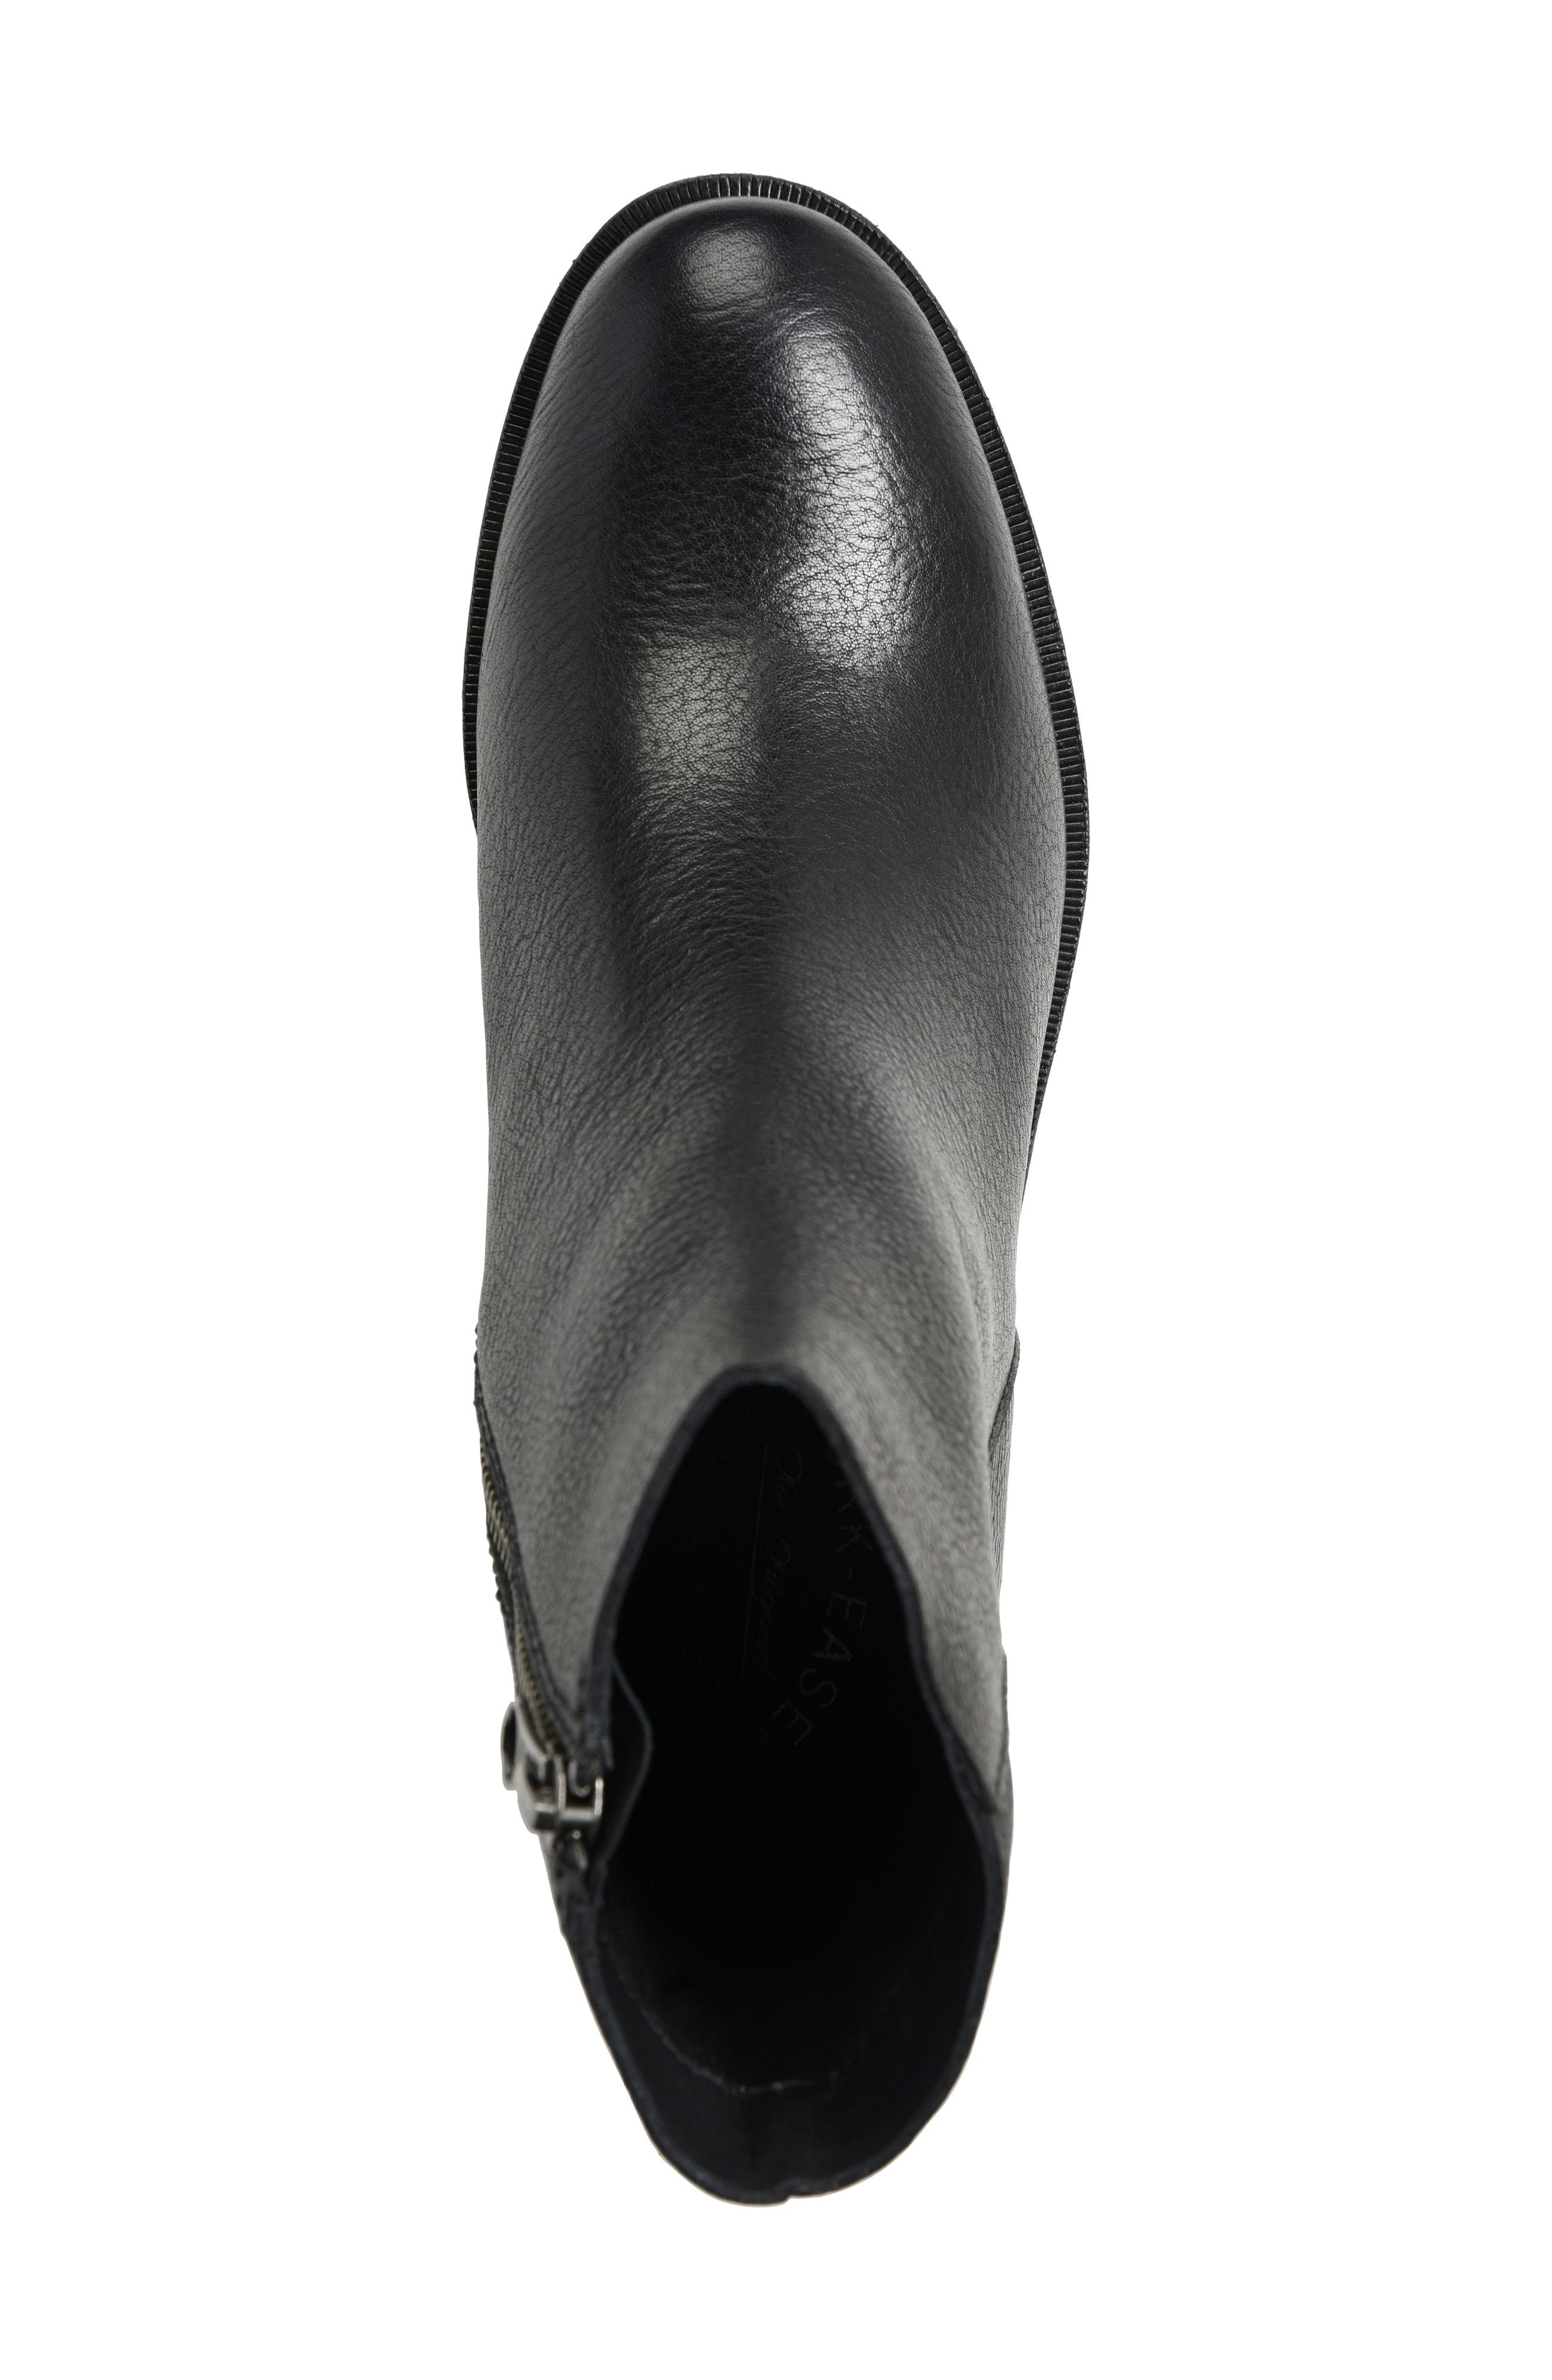 Mayten Bootie,                             Alternate thumbnail 5, color,                             Black Leather